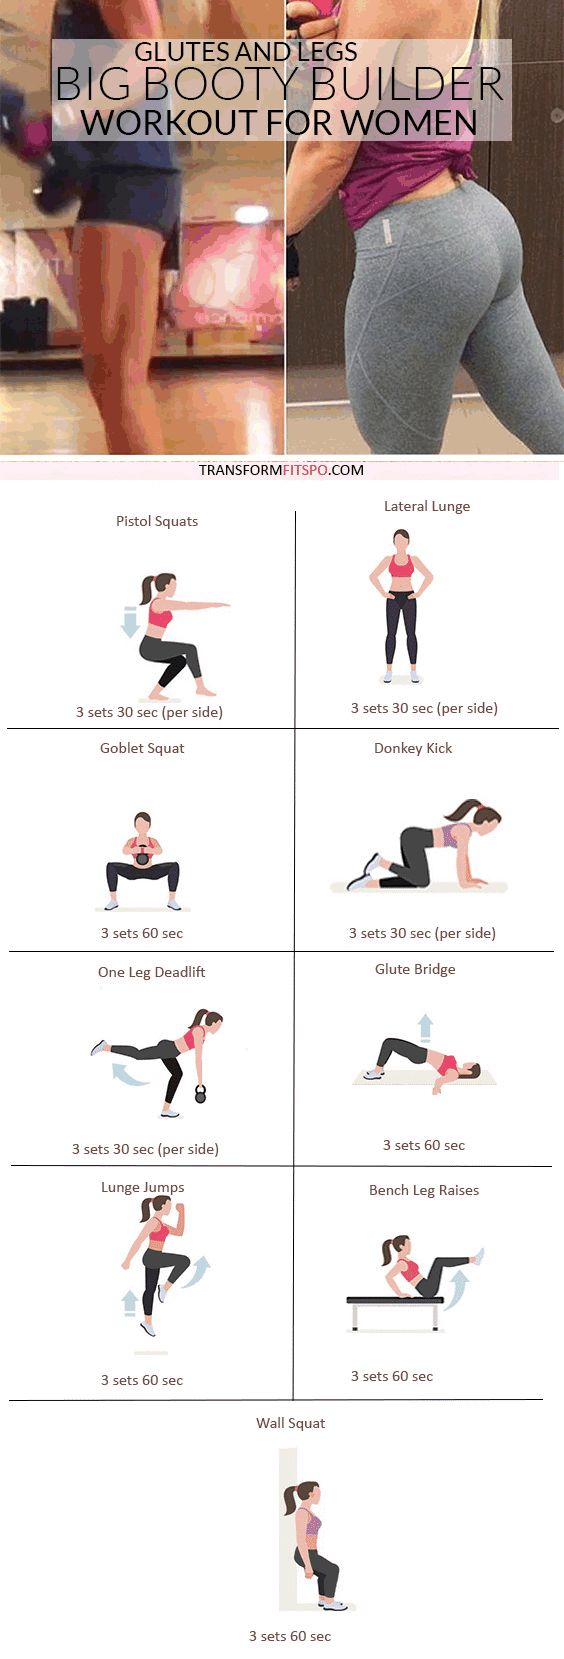 #womensworkout #workout #femalefitness Repin and share if this workout gave you crazy booty size! Click the pin for the full workout.